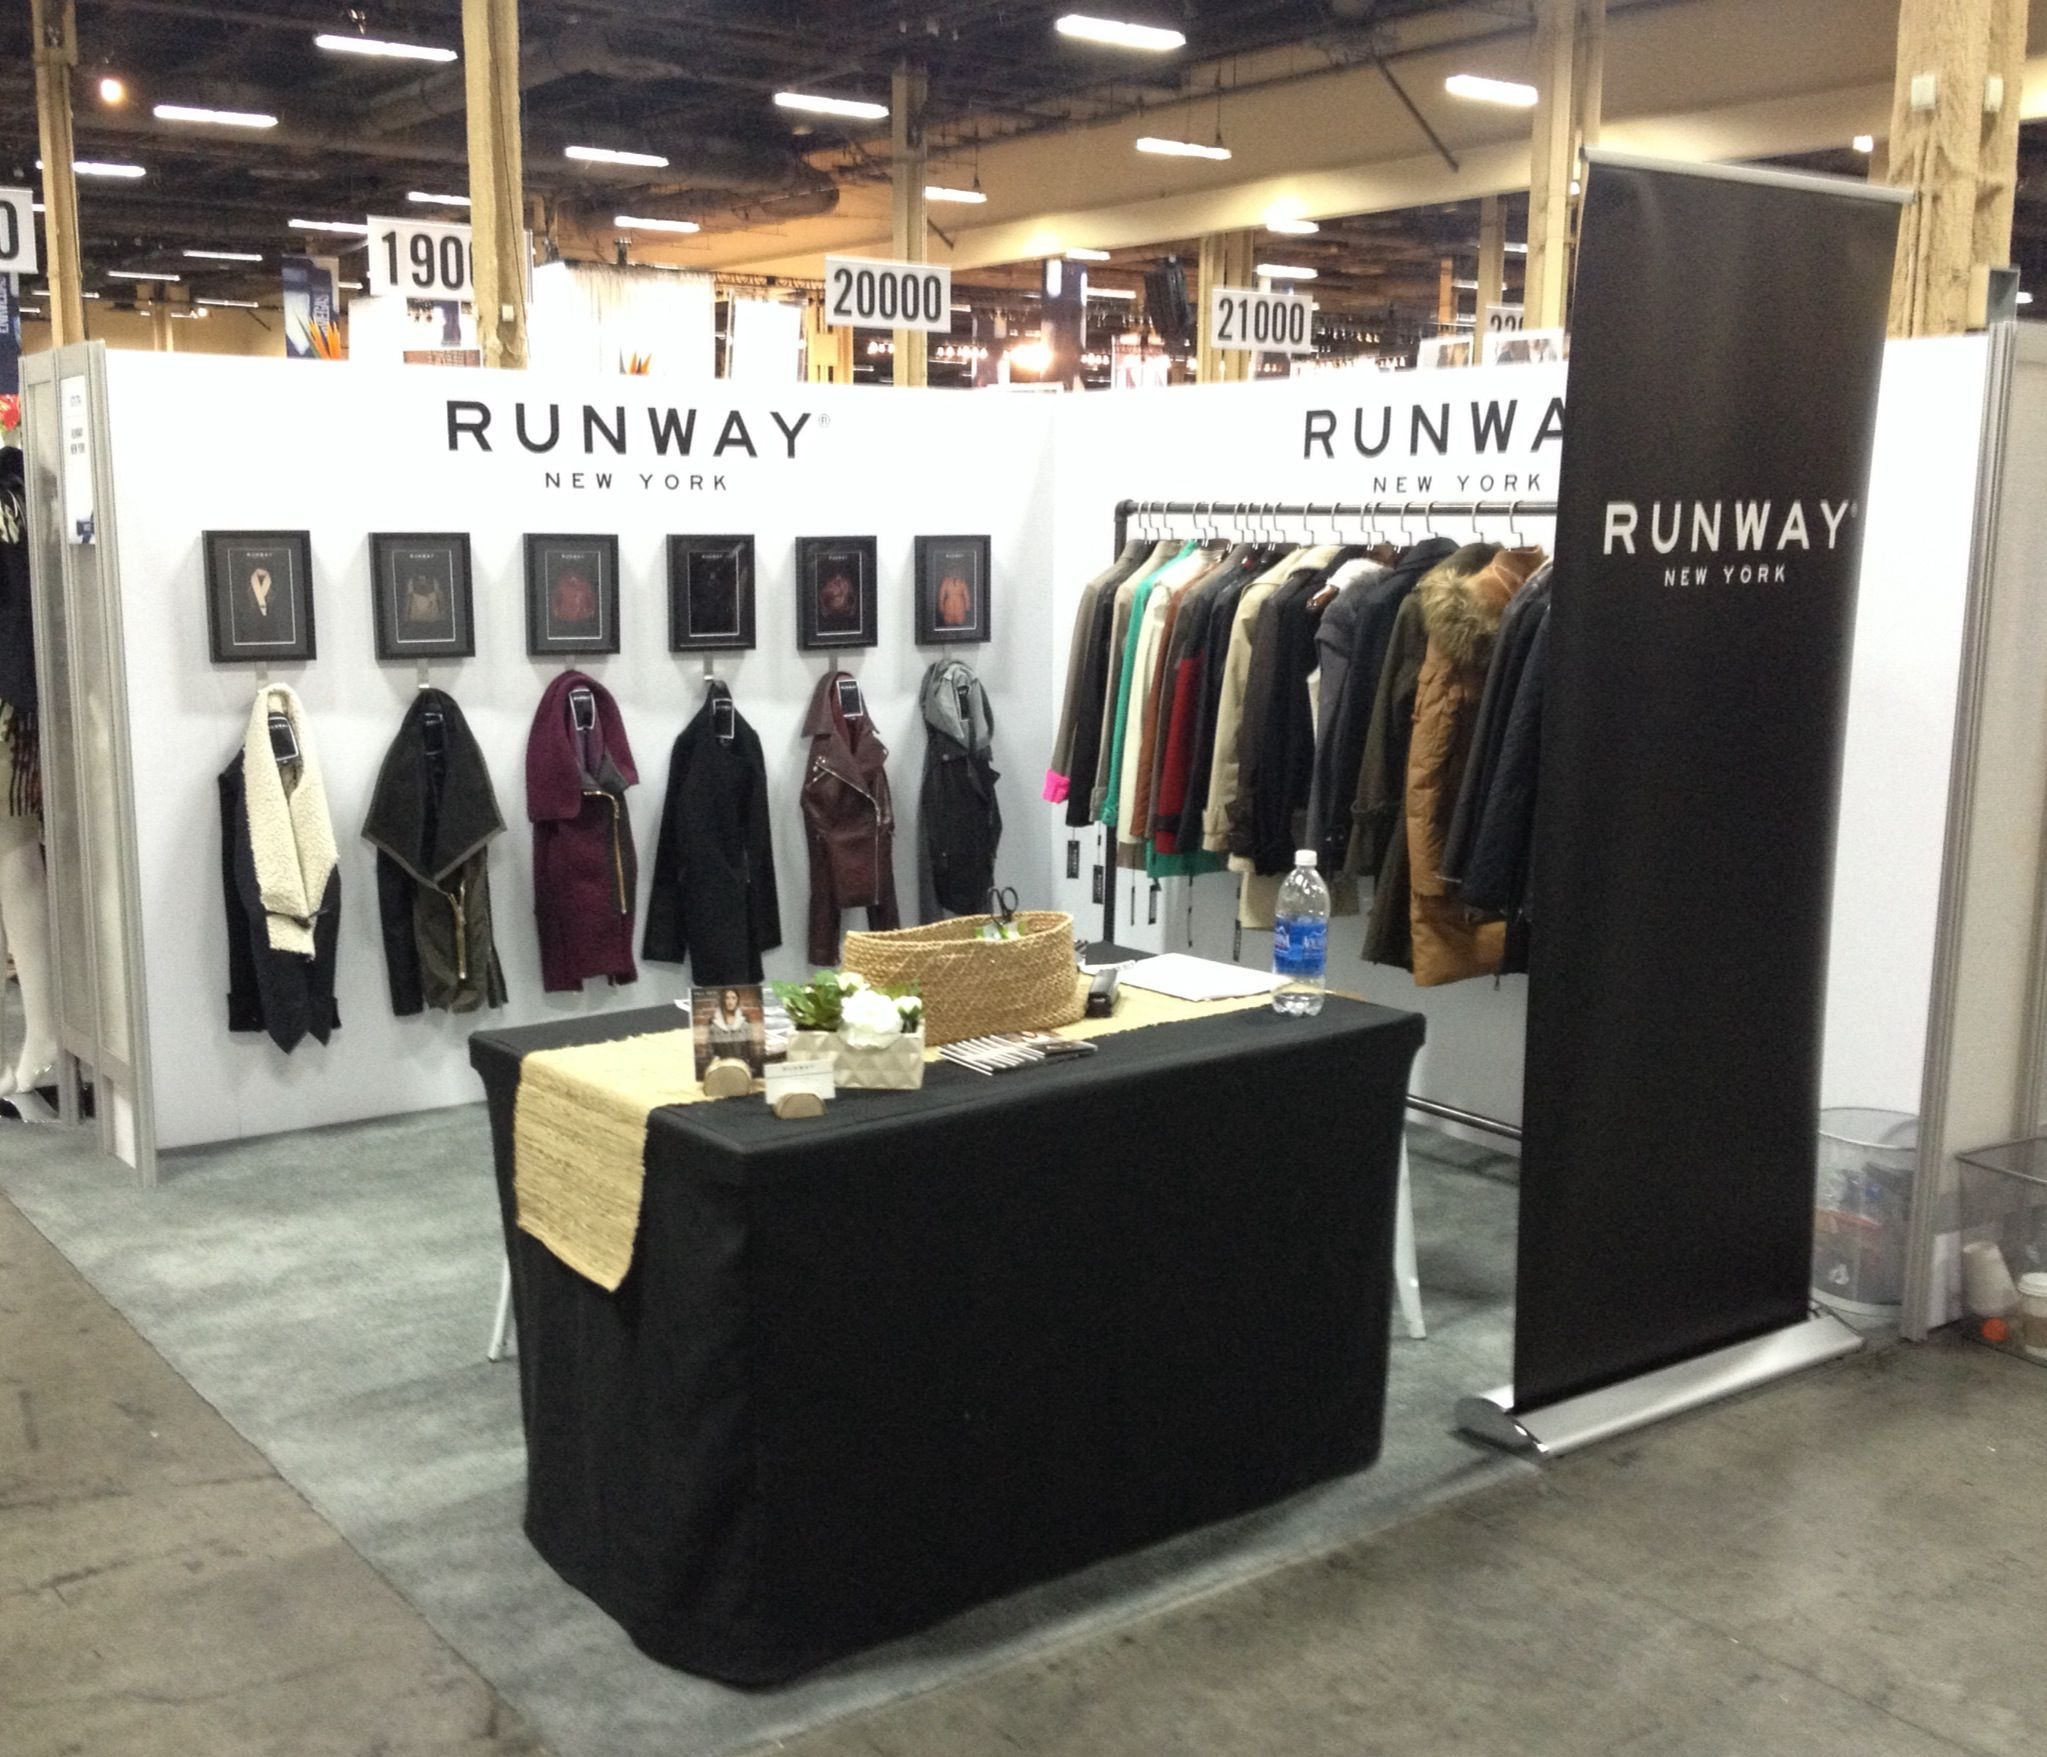 Enkvegas 2014 Las Vegas Nv Fashion Trade Show The Runway New York Booth Blanc Noir